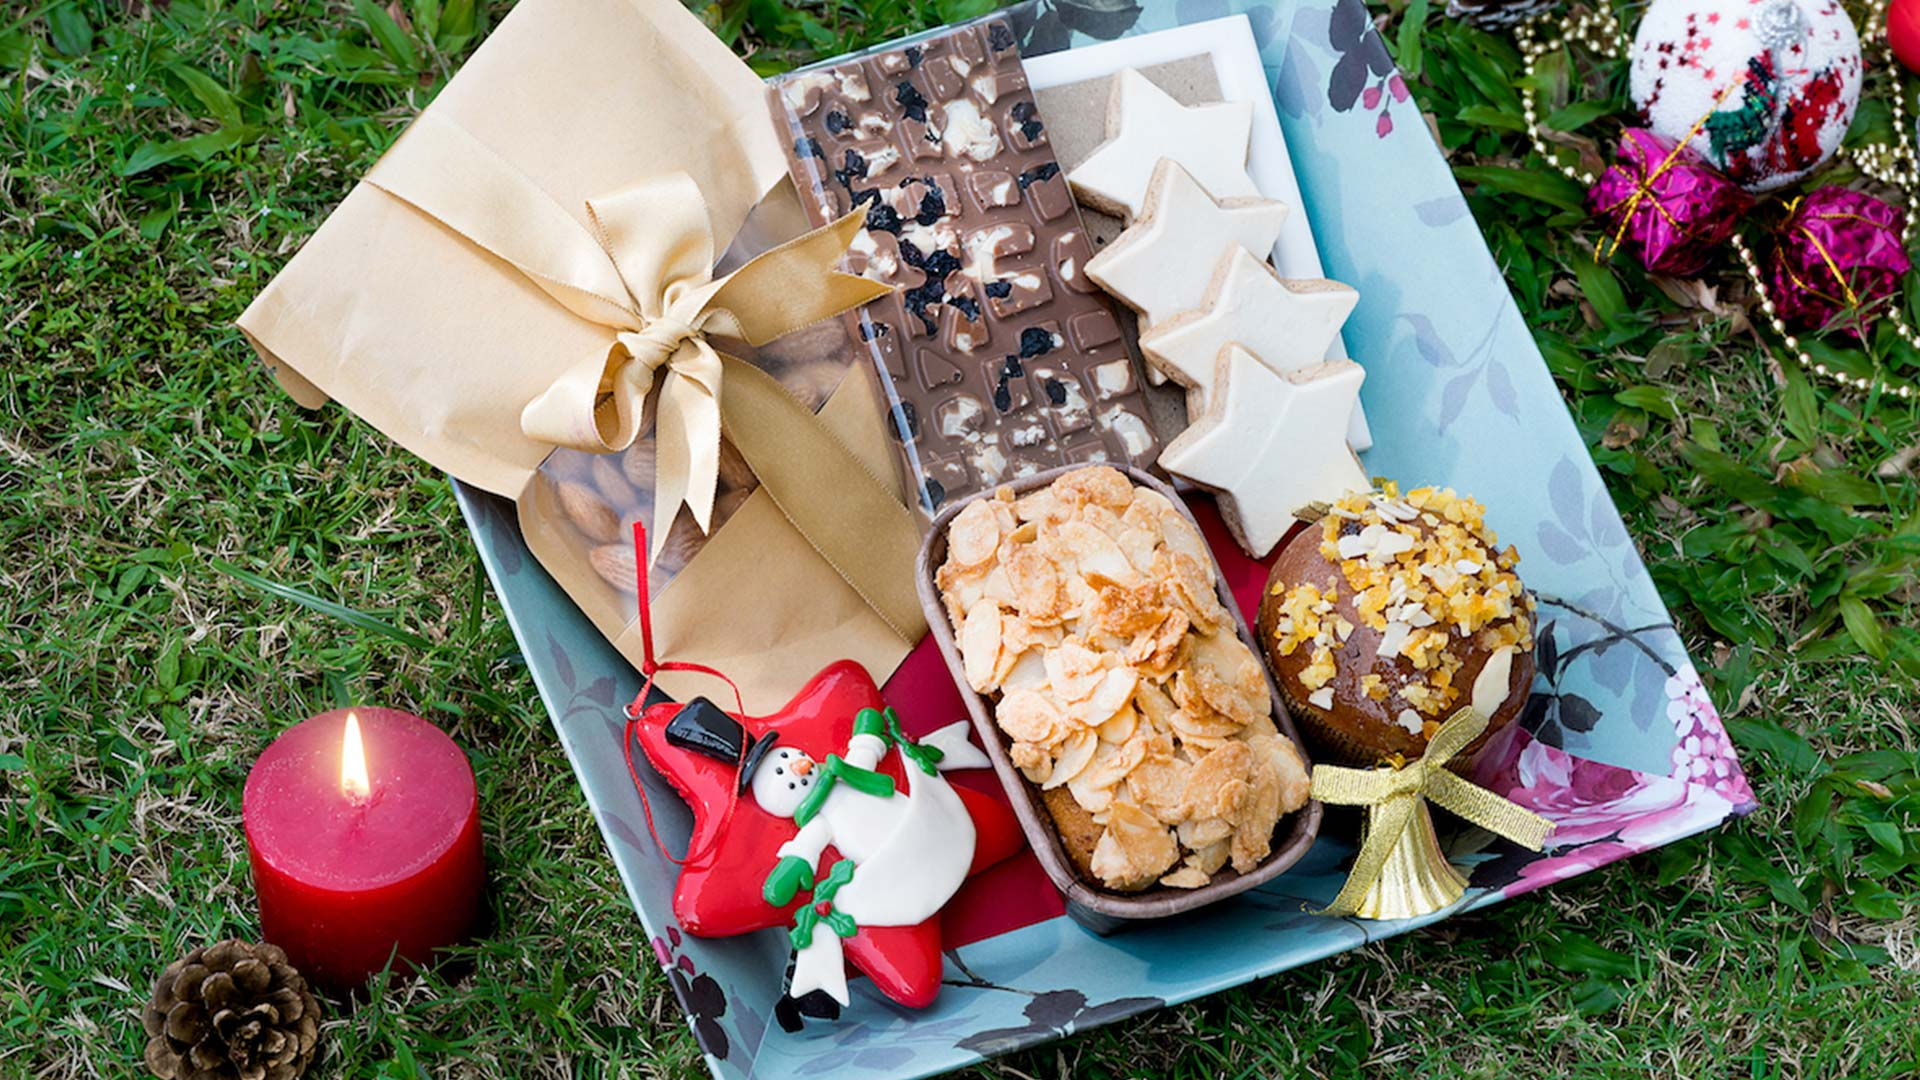 The Importance Of Gifting And Chocolate And Snack Gift Baskets With Thailand Wide Delivery